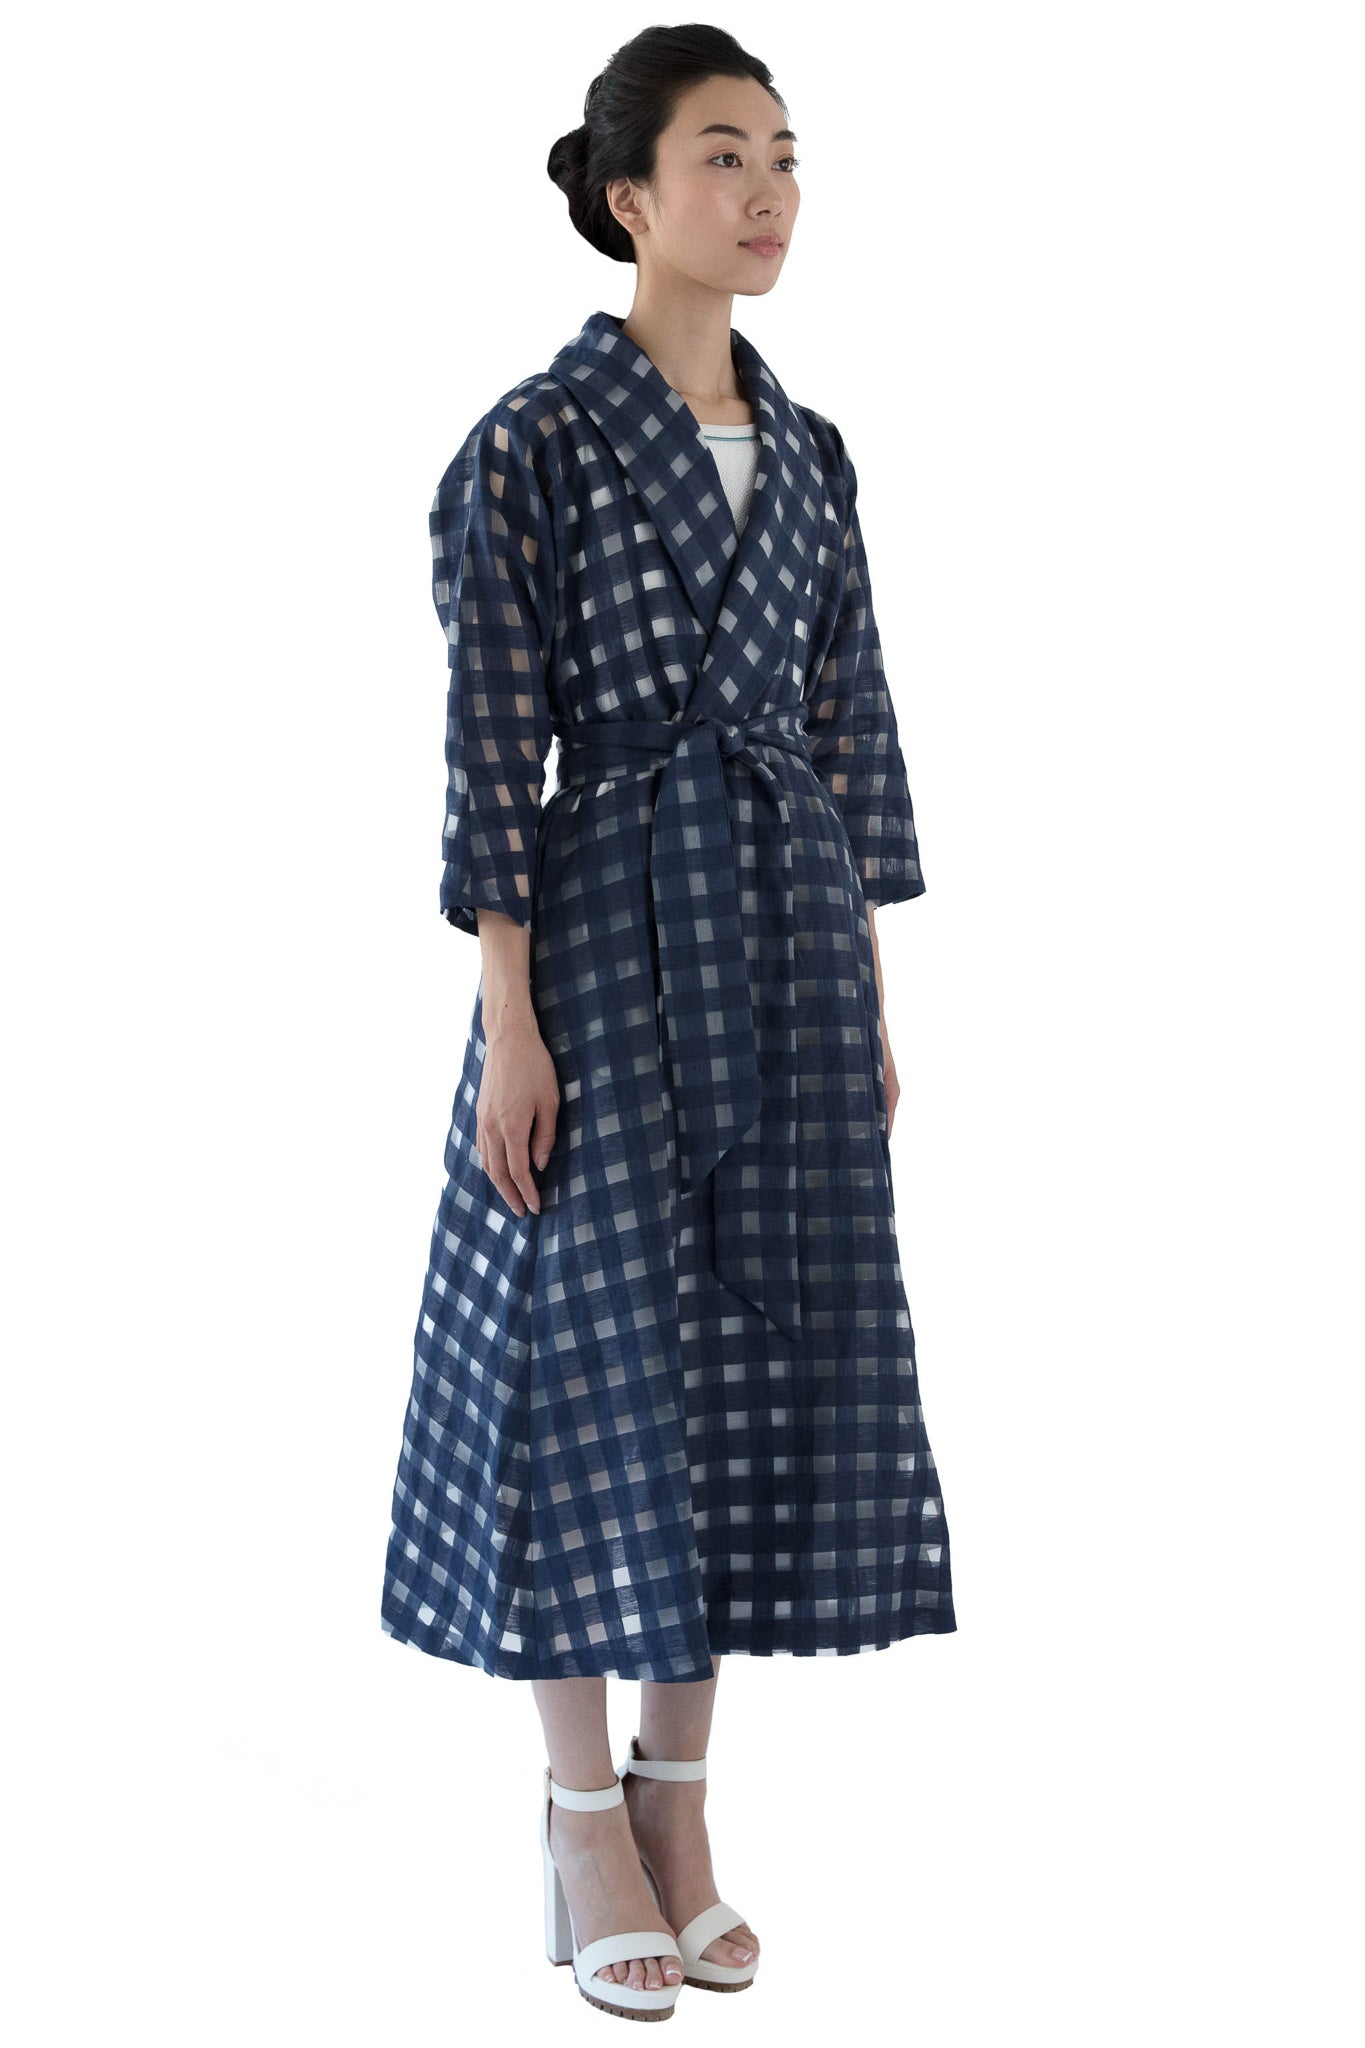 Side view of belted navy window pane wrap dress